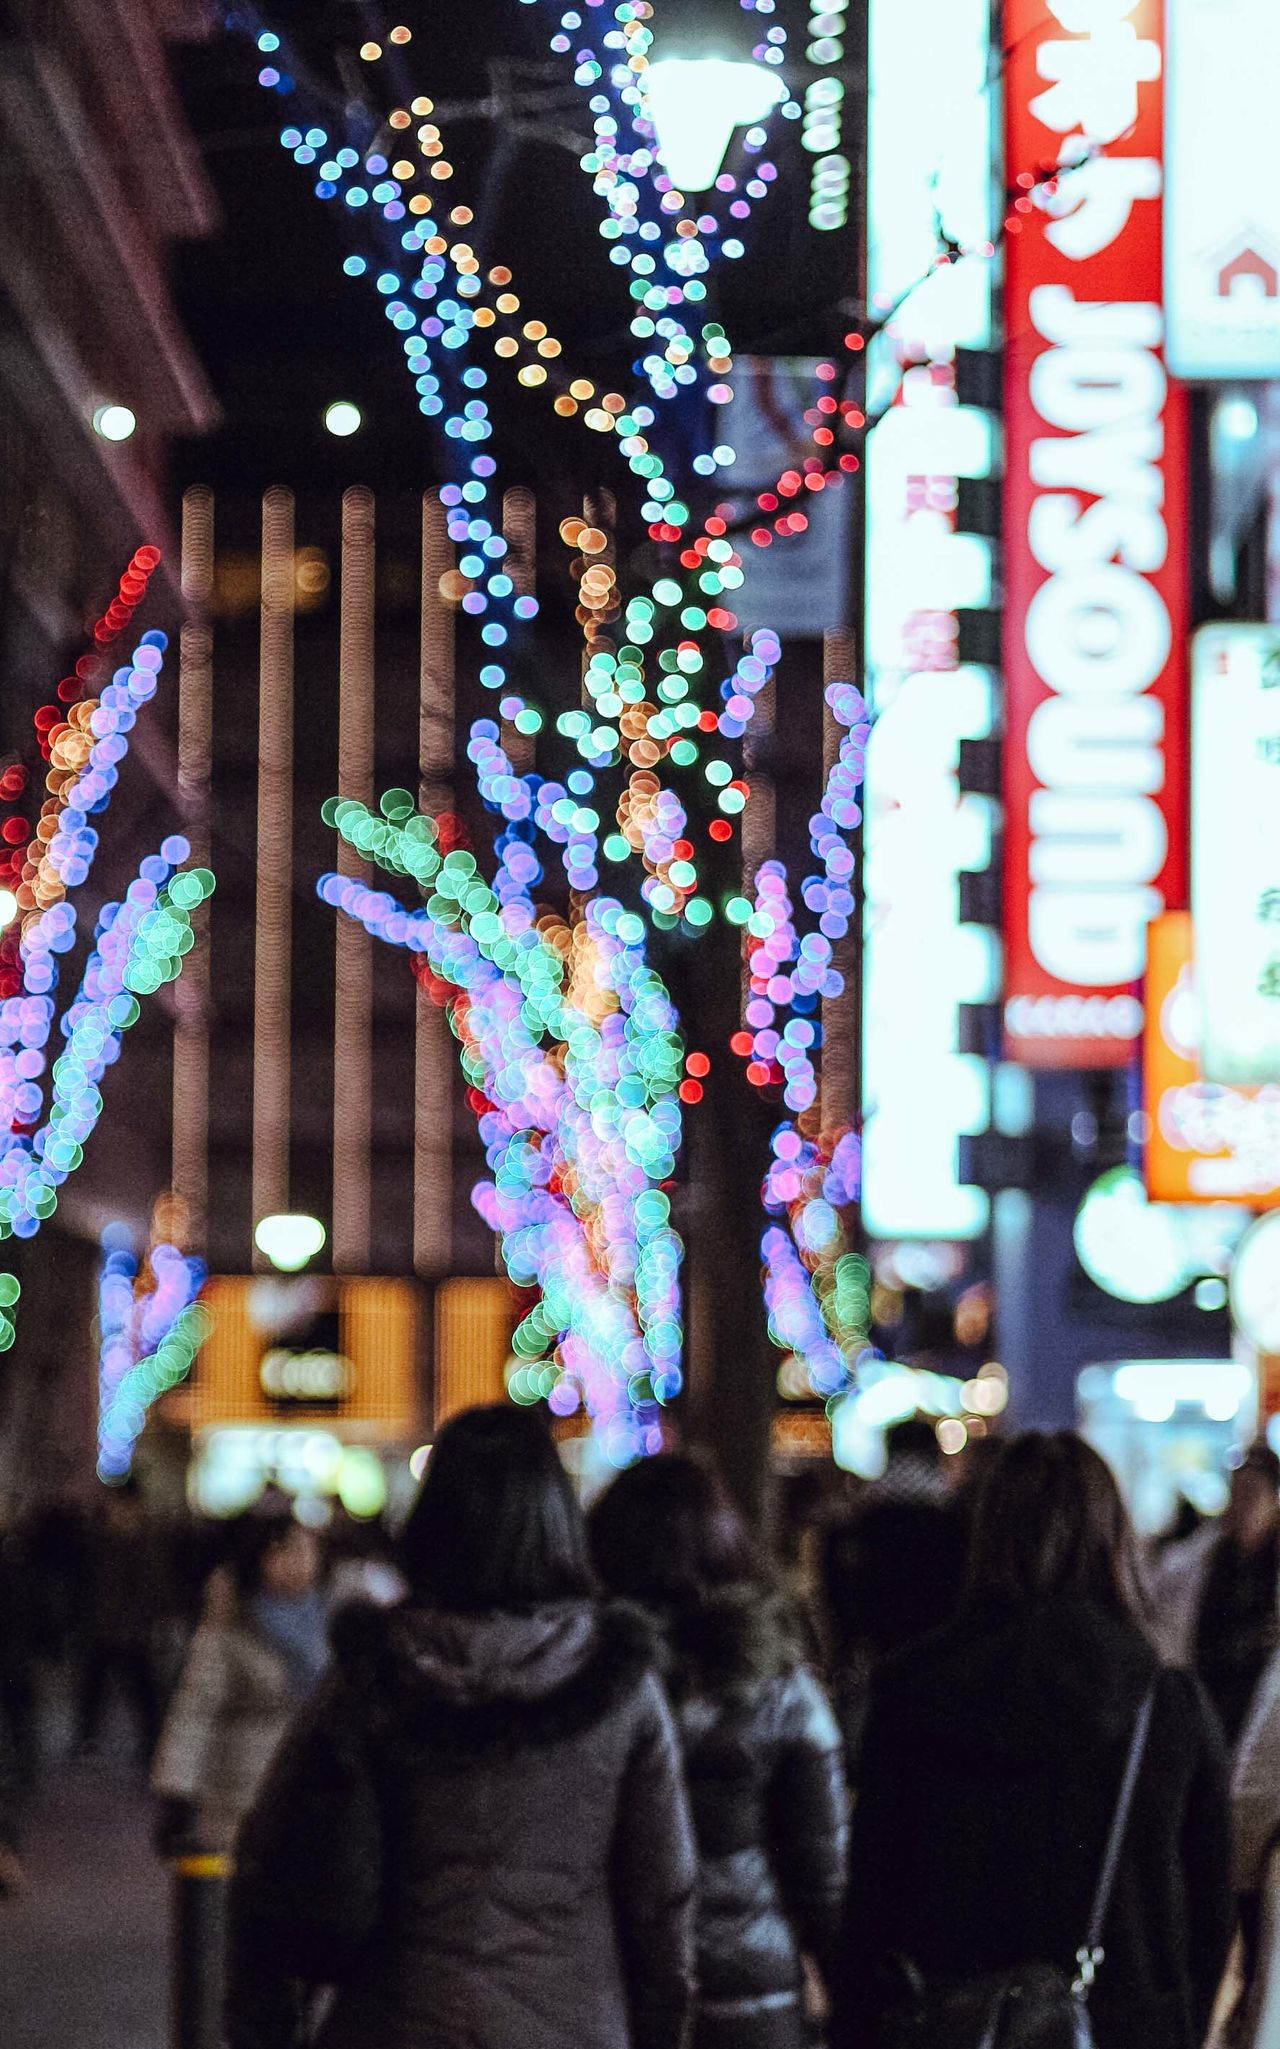 Shinjuku, always full with light Blue Bokeh Bokeh Photography City City Life Cold Temperature Evening Japan Light Lights Night Outdoors People Street Streetphotography Tokyo